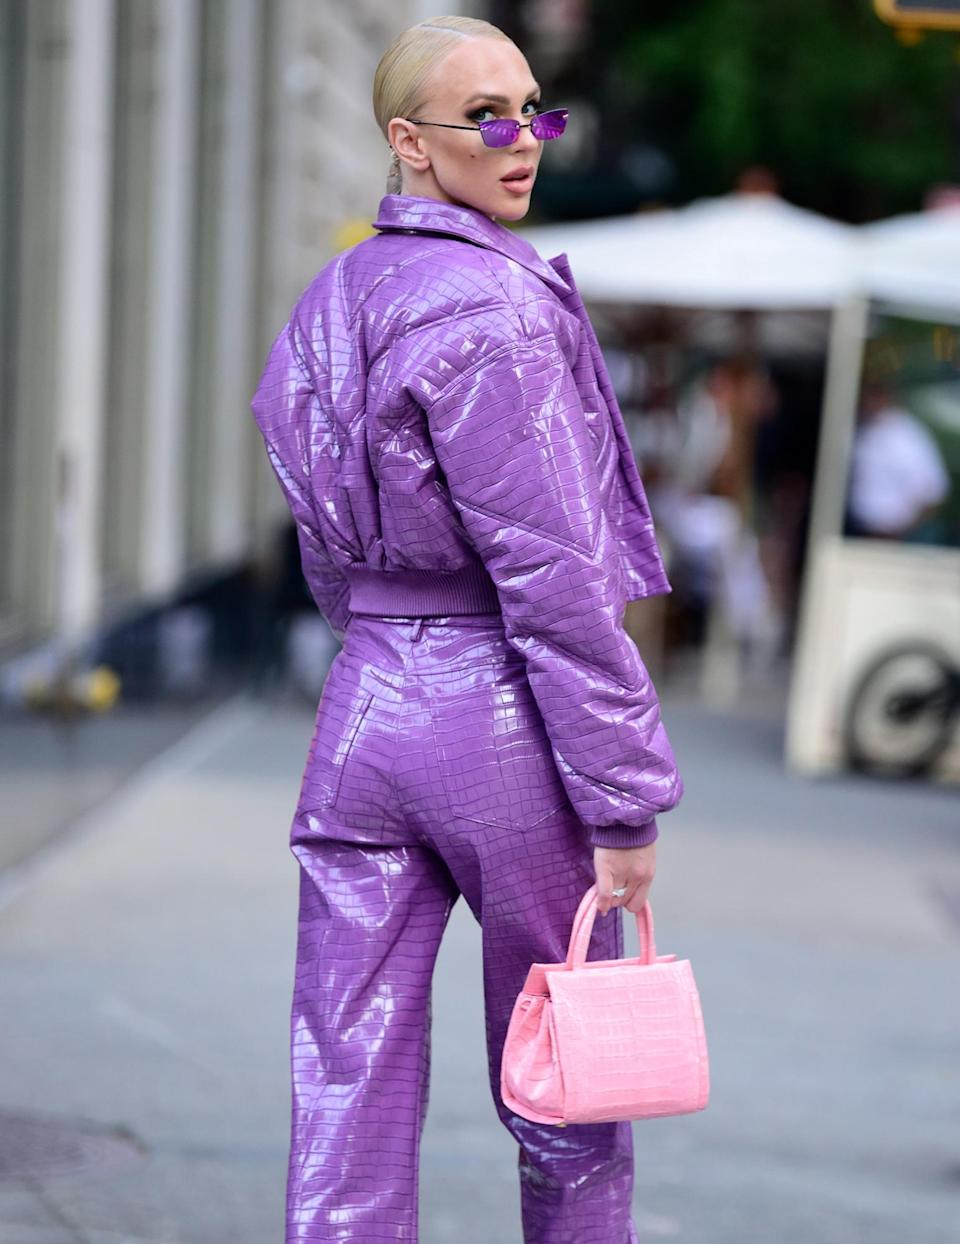 <p><em>Selling Sunset</em>'s Christine Quinn goes glam on the Upper East Side during a shoot on Sept. 14 in N.Y.C.</p>